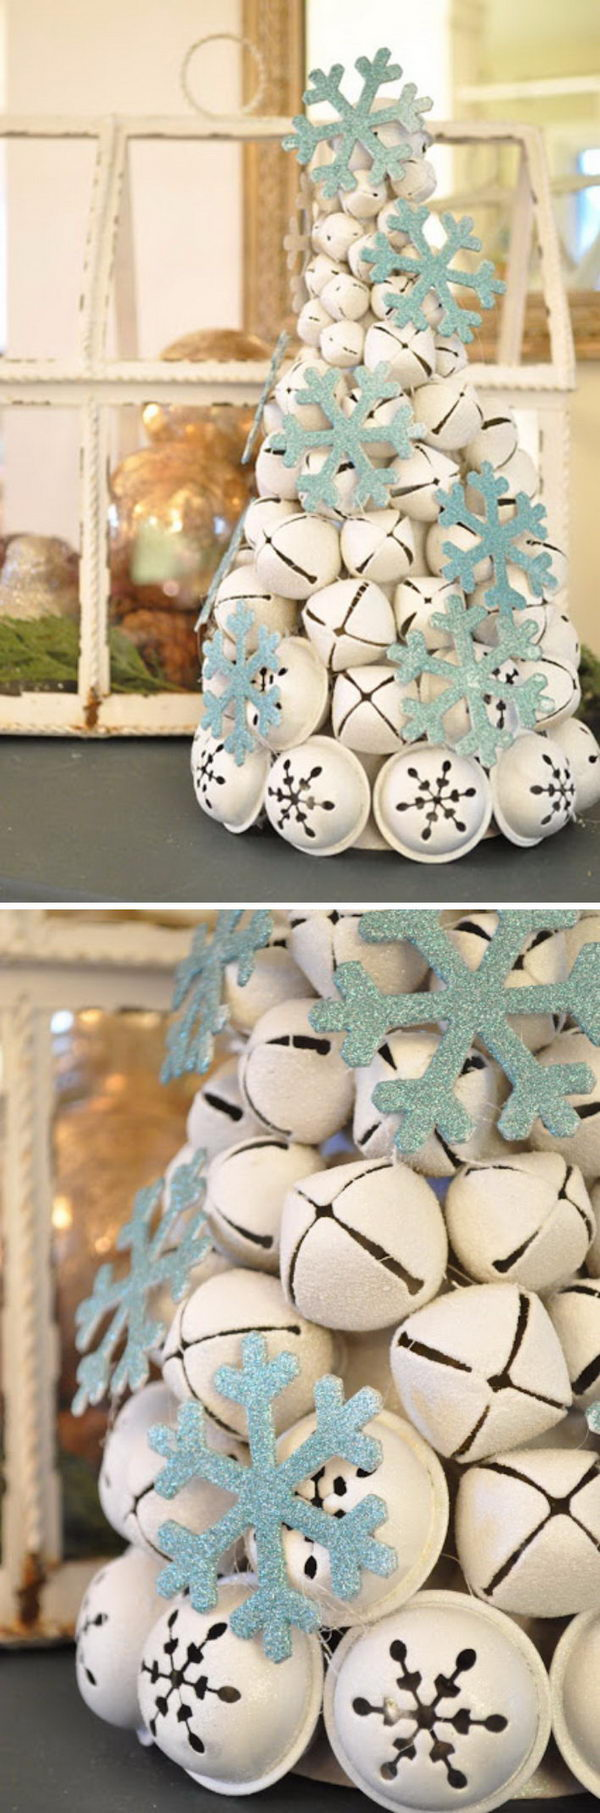 DIY Jingle Bell Tree.